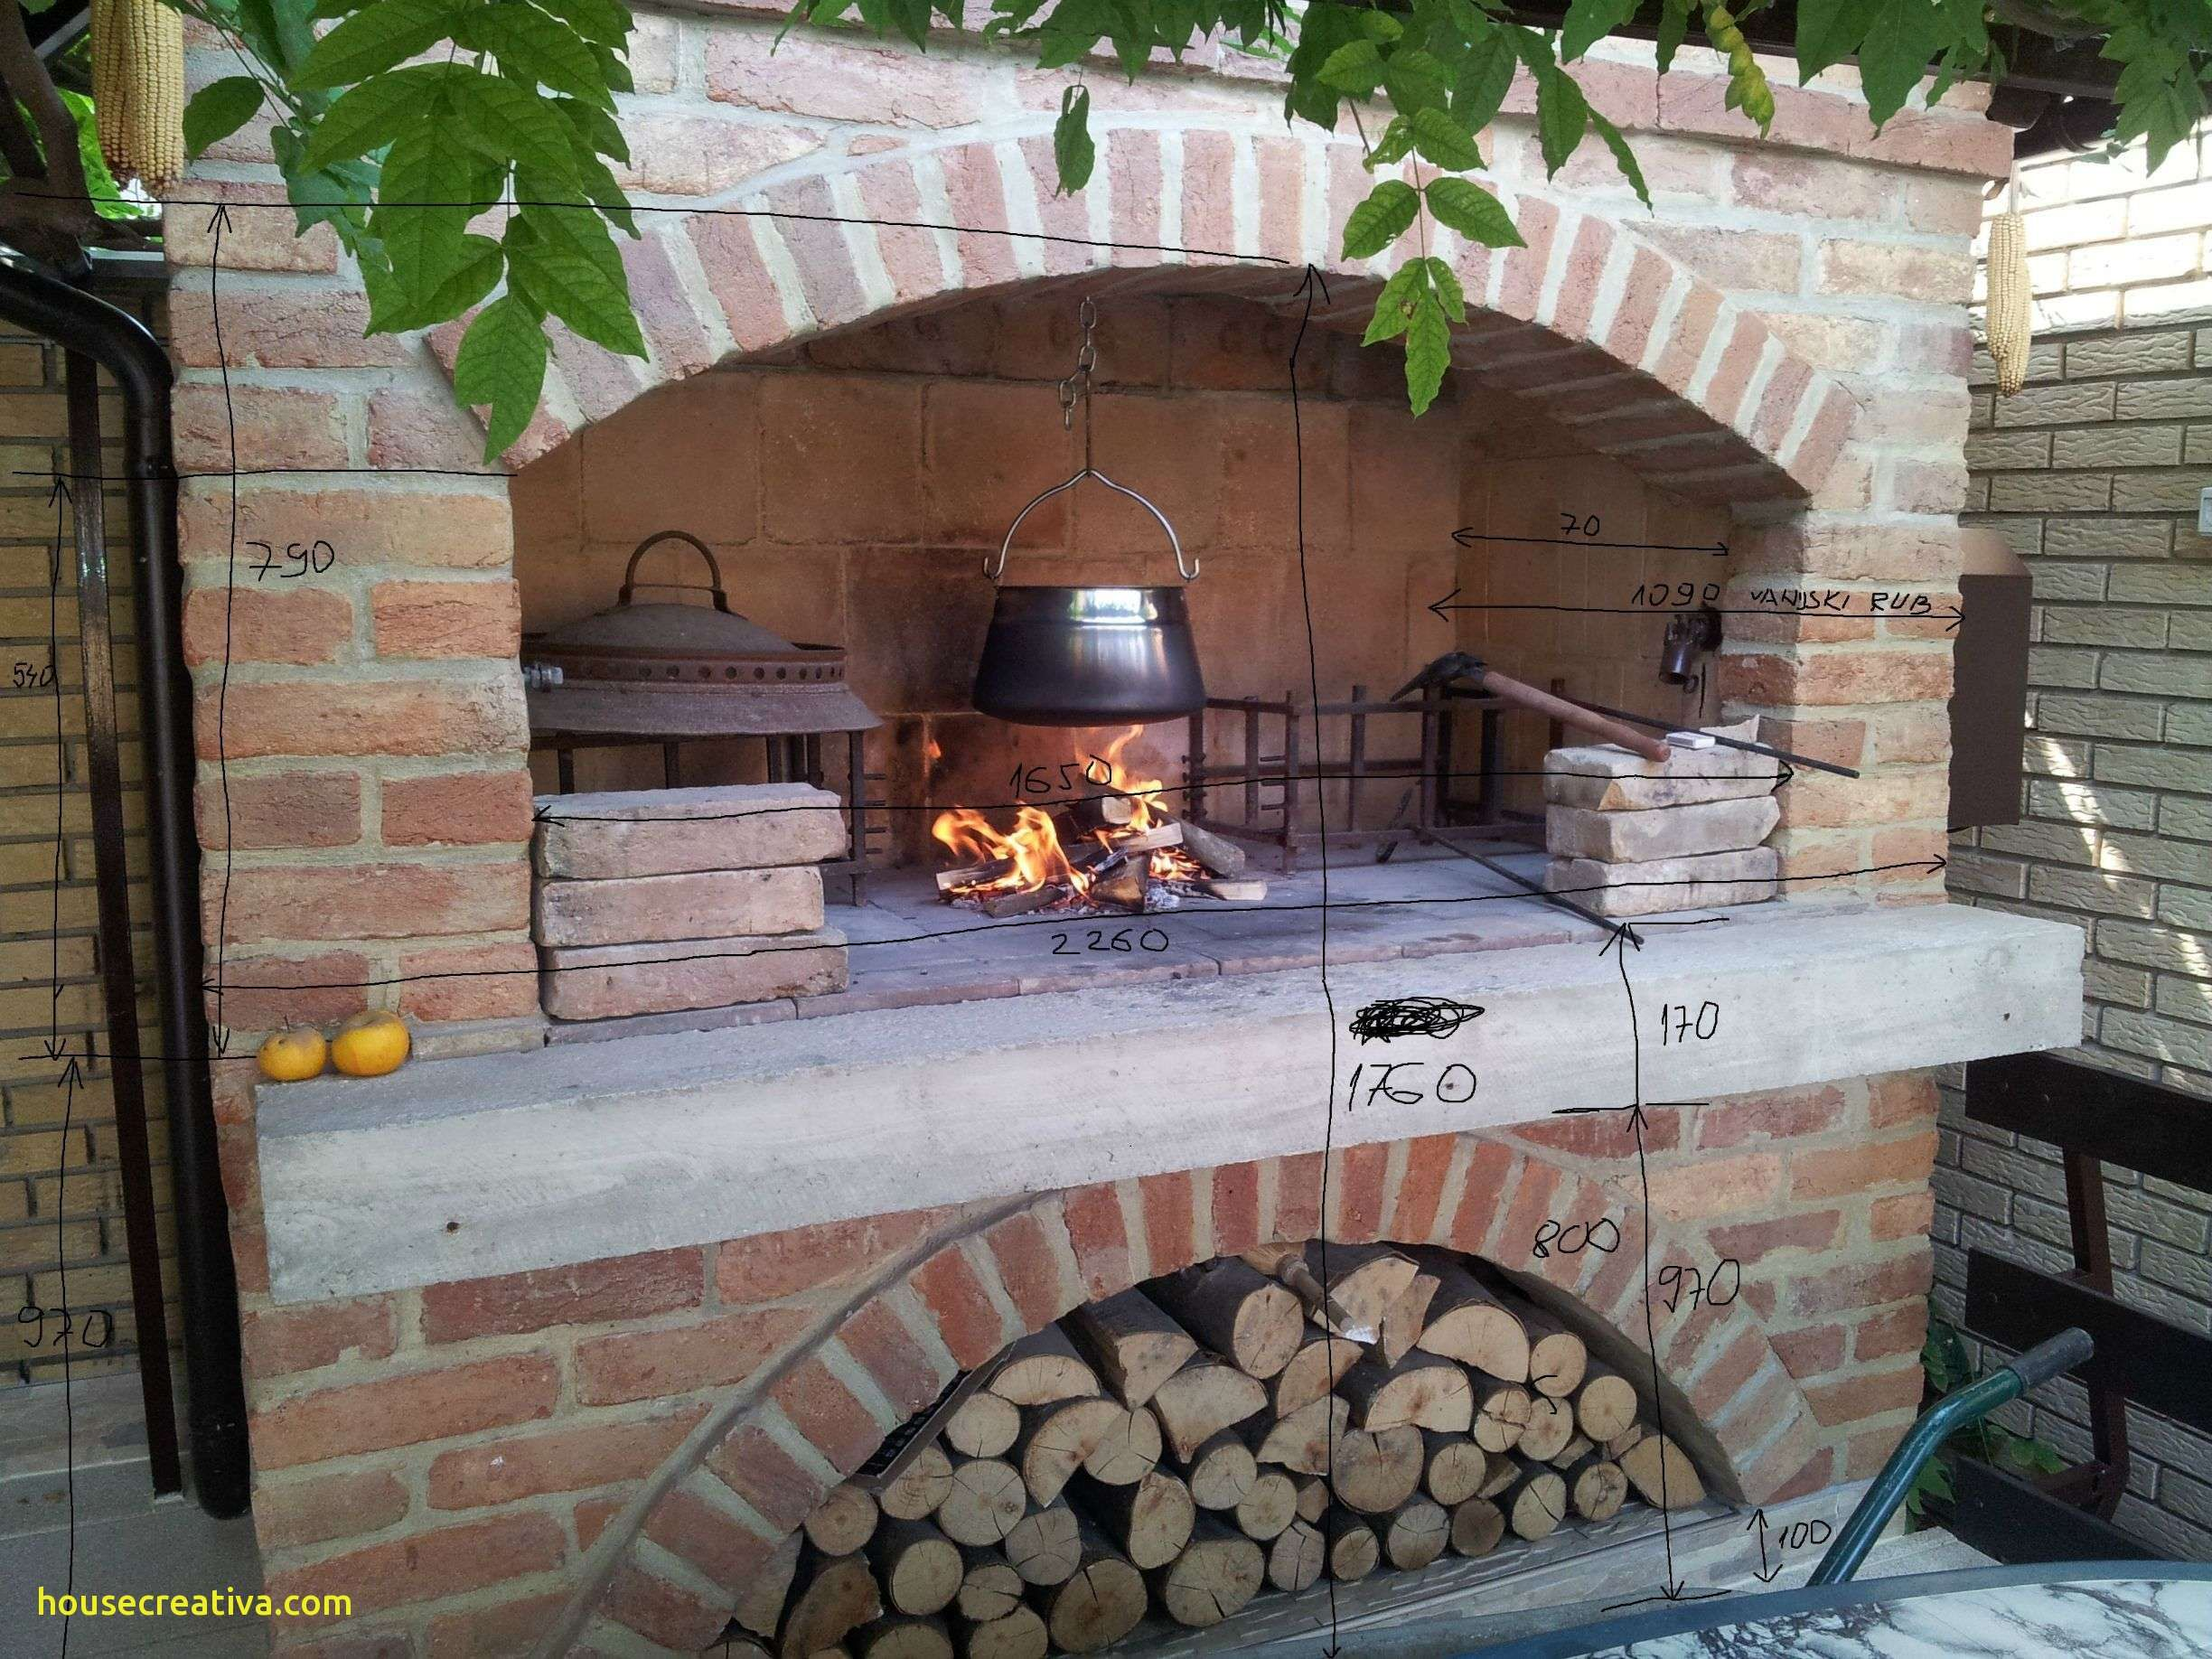 Luxury Outdoor Fireplace Pizza Oven Combo Homedecoration Homedecorati Outdoor Cooking Fireplace Outdoor